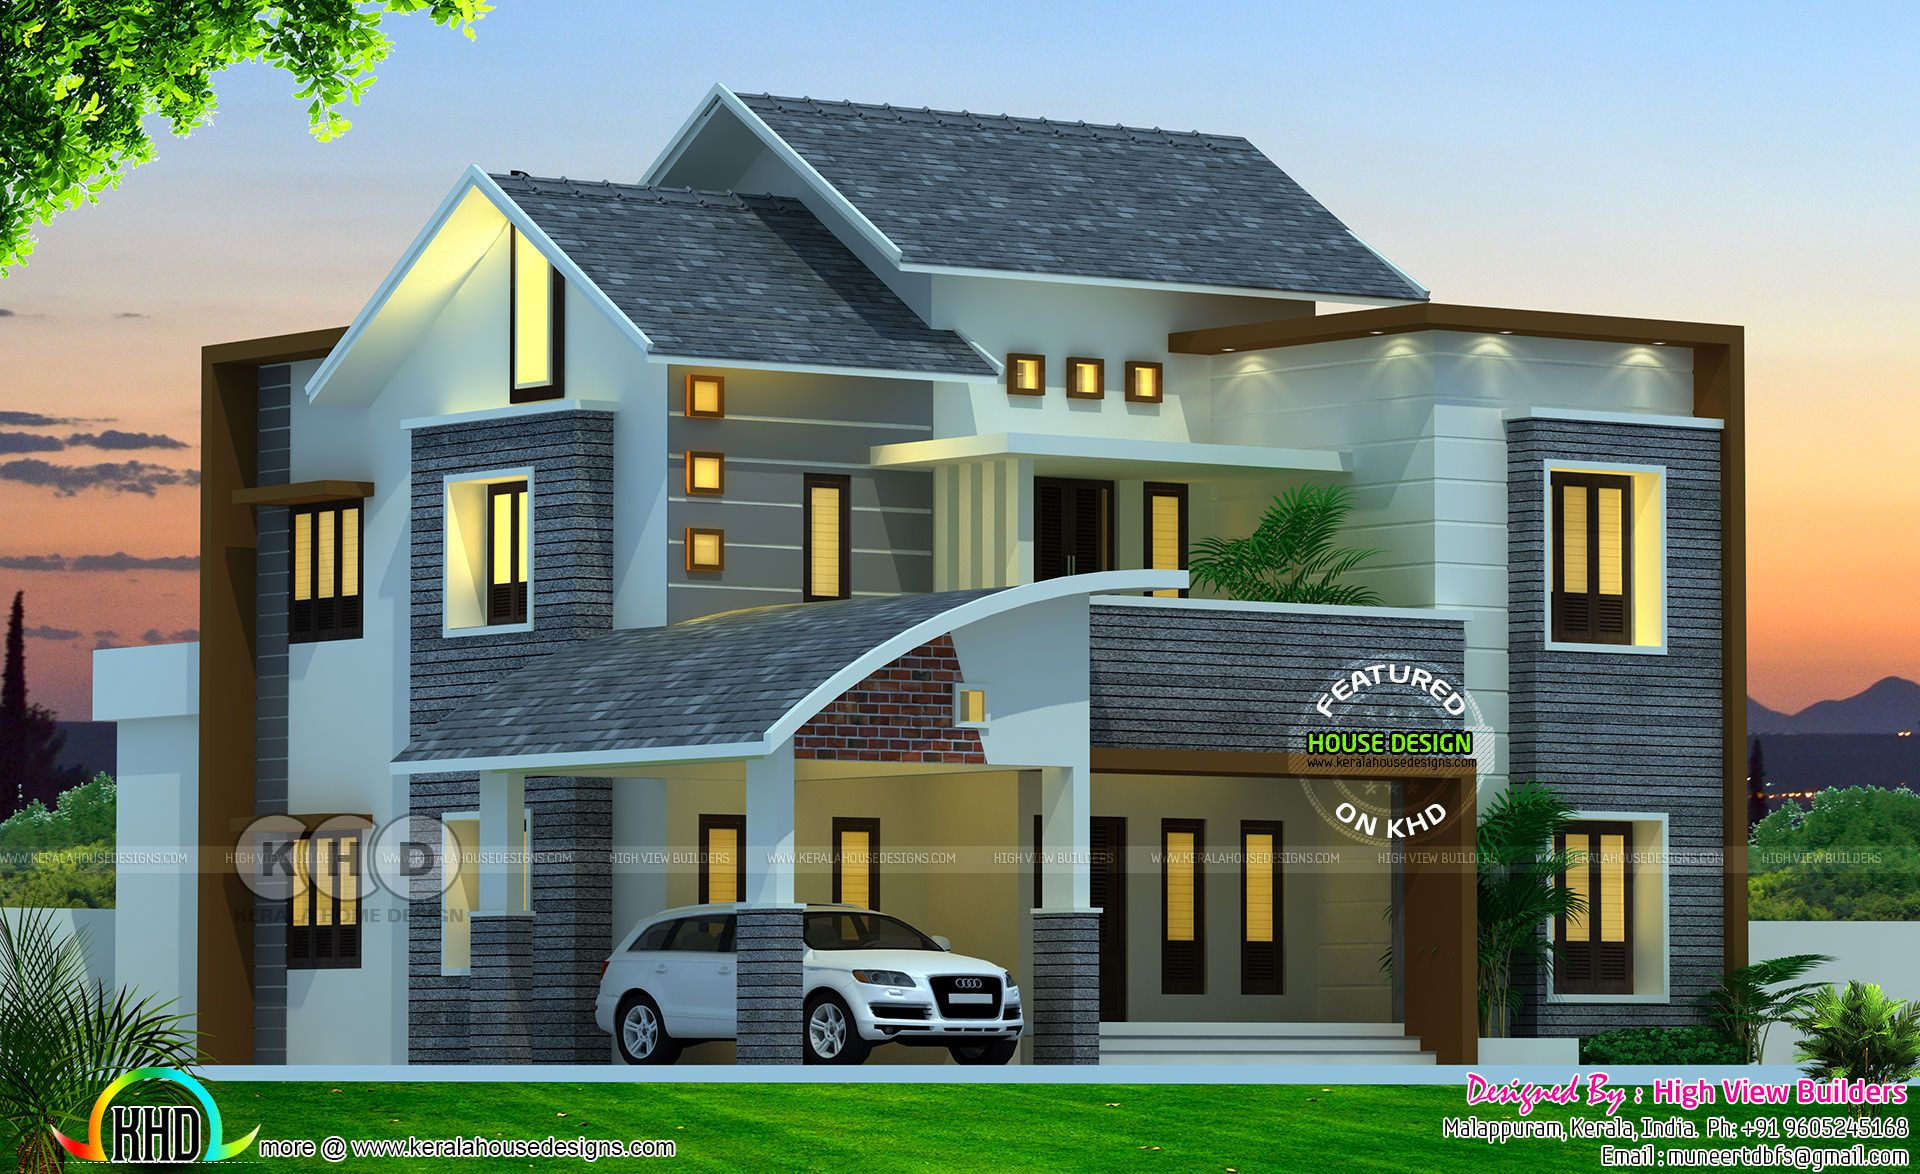 Modern Kerala Home Design By High View Builders In 2018 Home